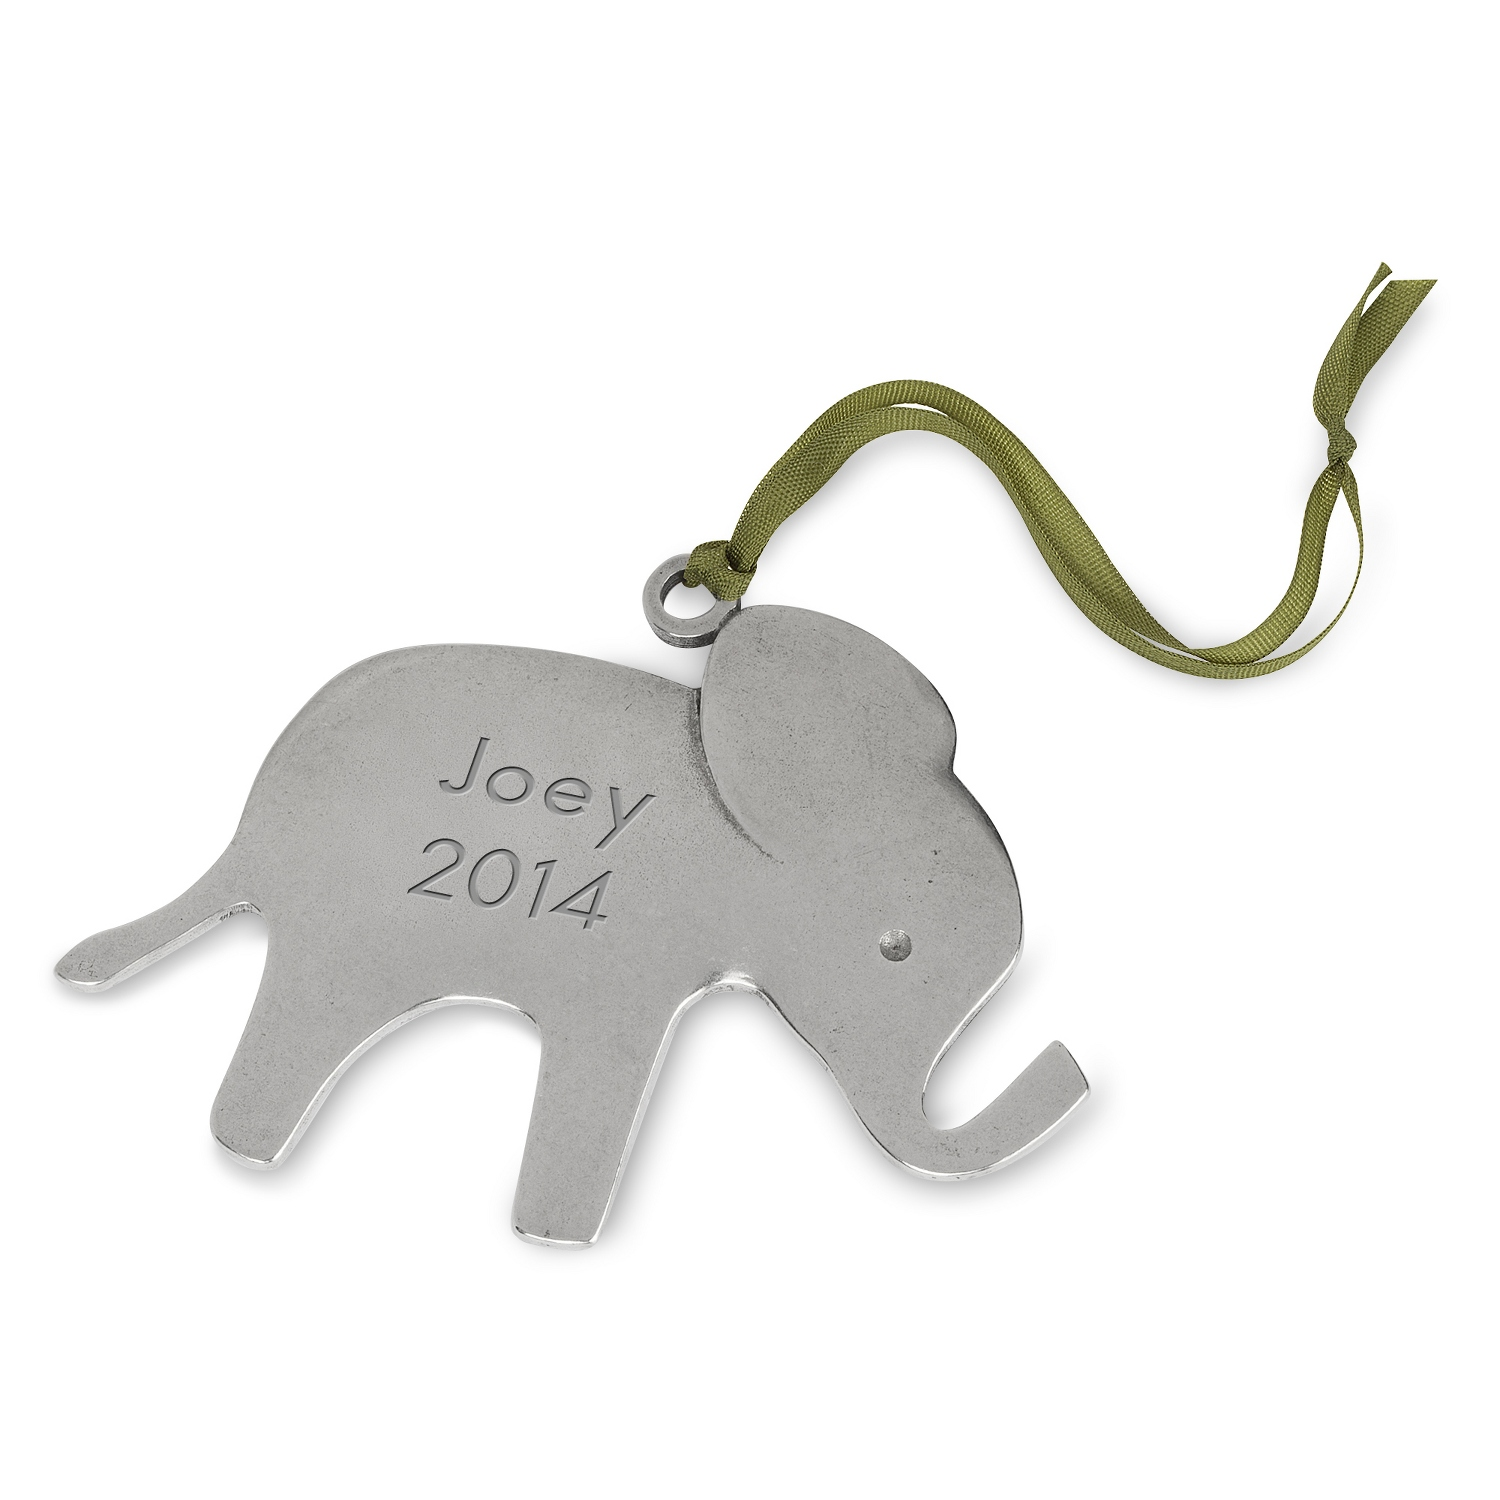 Personalizable ornaments - Personalized Pewter Elephant Christmas Ornament